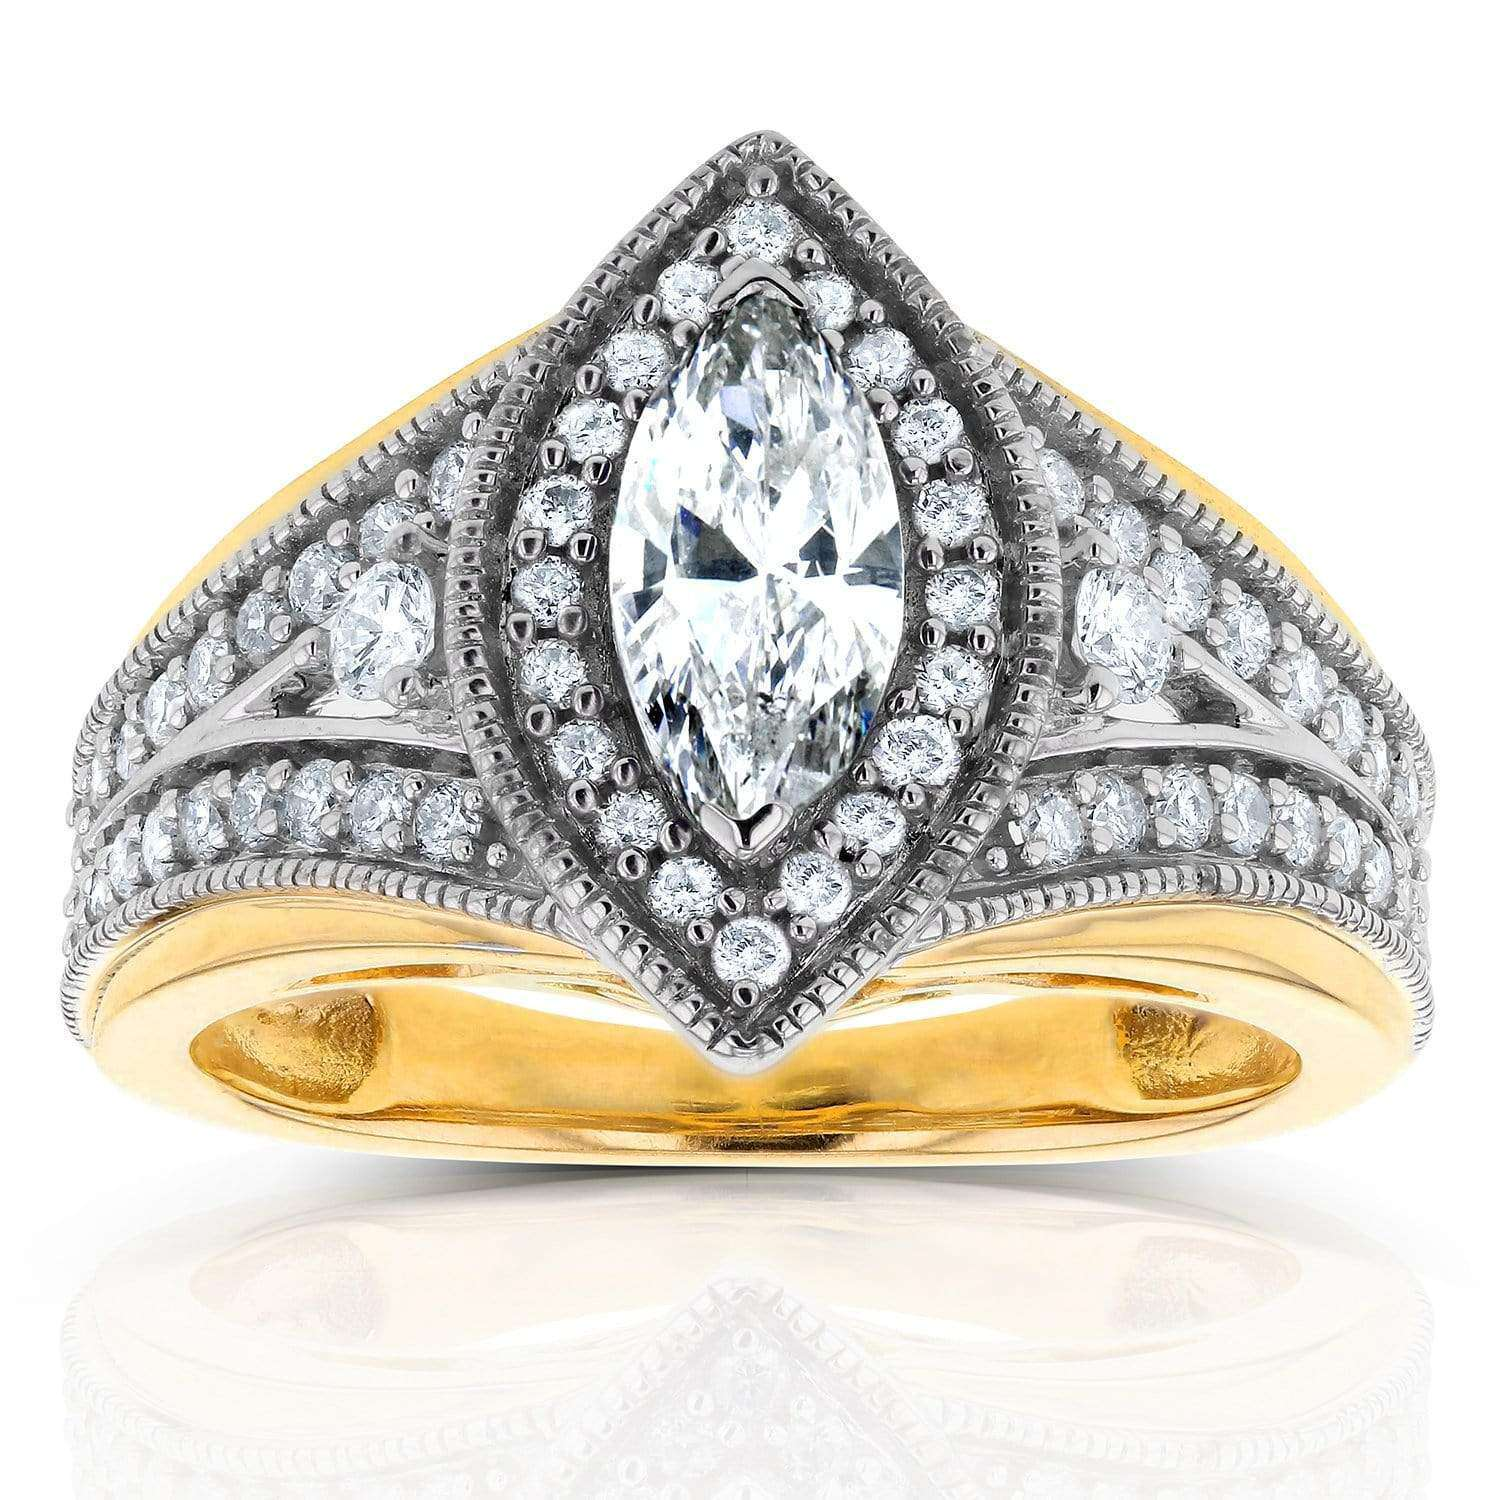 Top Art Deco Marquise Diamond  Engagement Ring 1 CTW in 14k Two-Tone Gold - 9.5